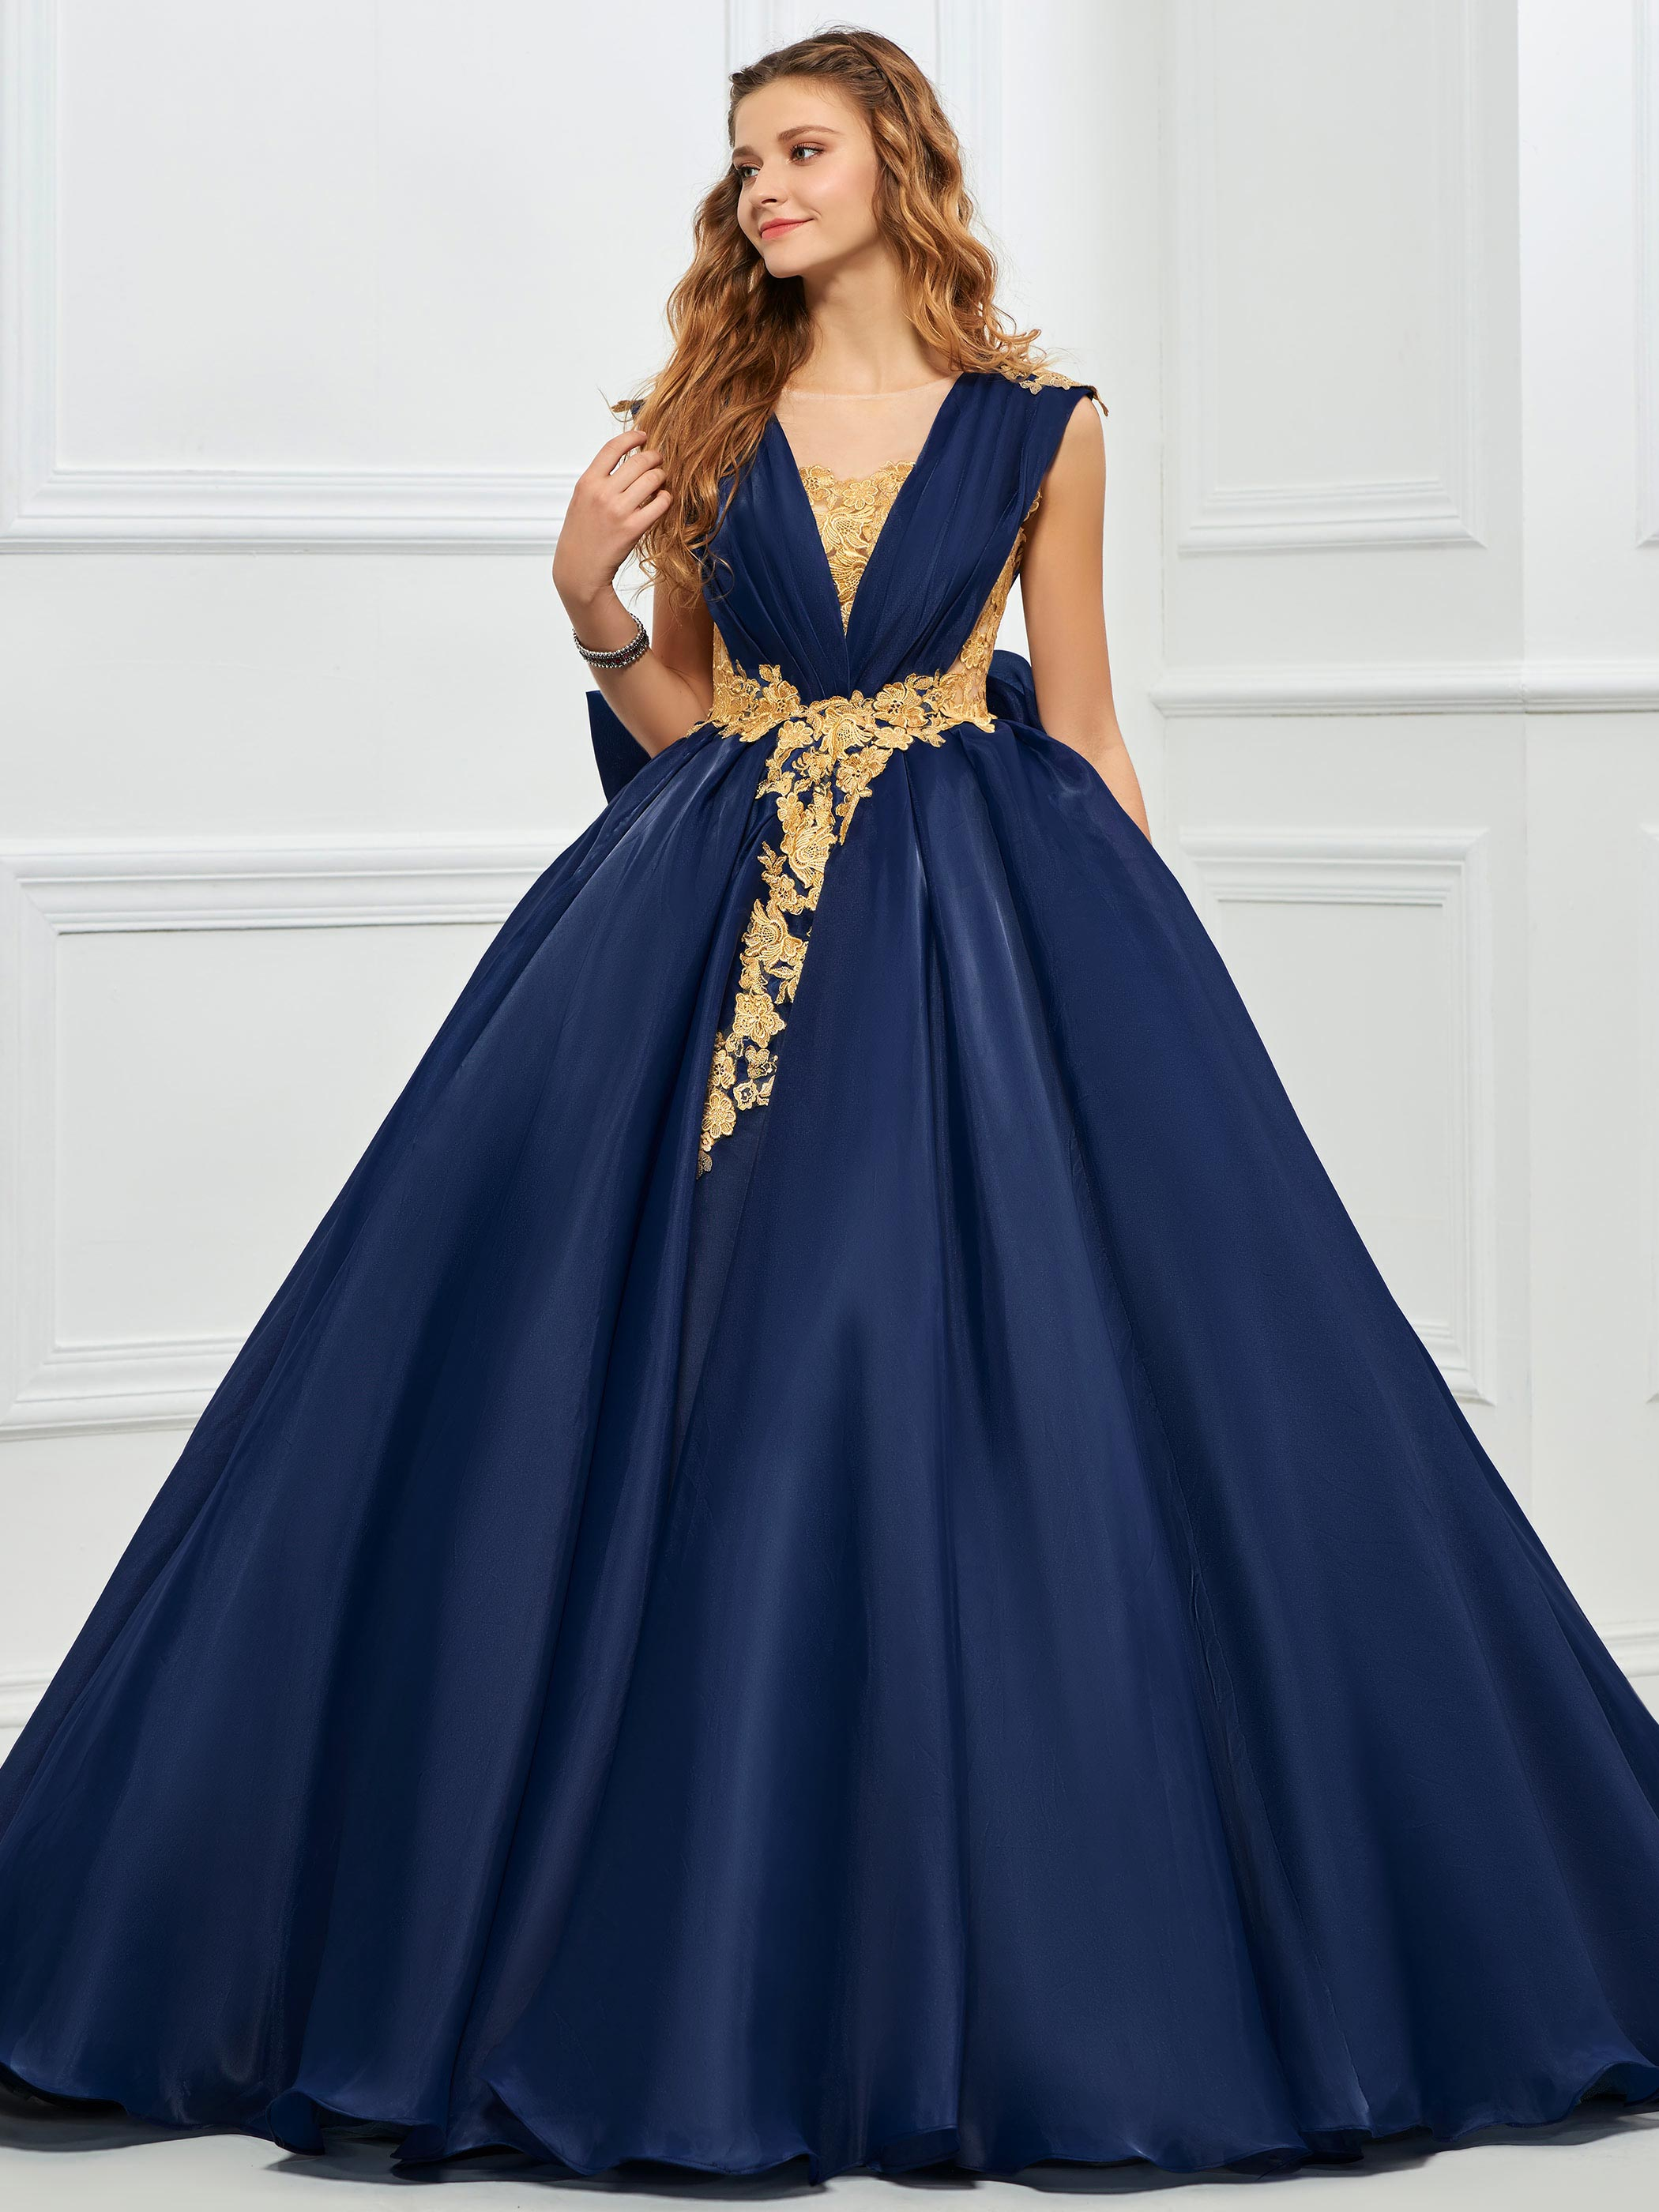 Tanpell Princess Appliques Lace Ball Gown Quinceanera Dress Vintage Bowknot Floor-Length Designer Christmas Quinceanera Dress vintage bowknot button embellished plaid dress